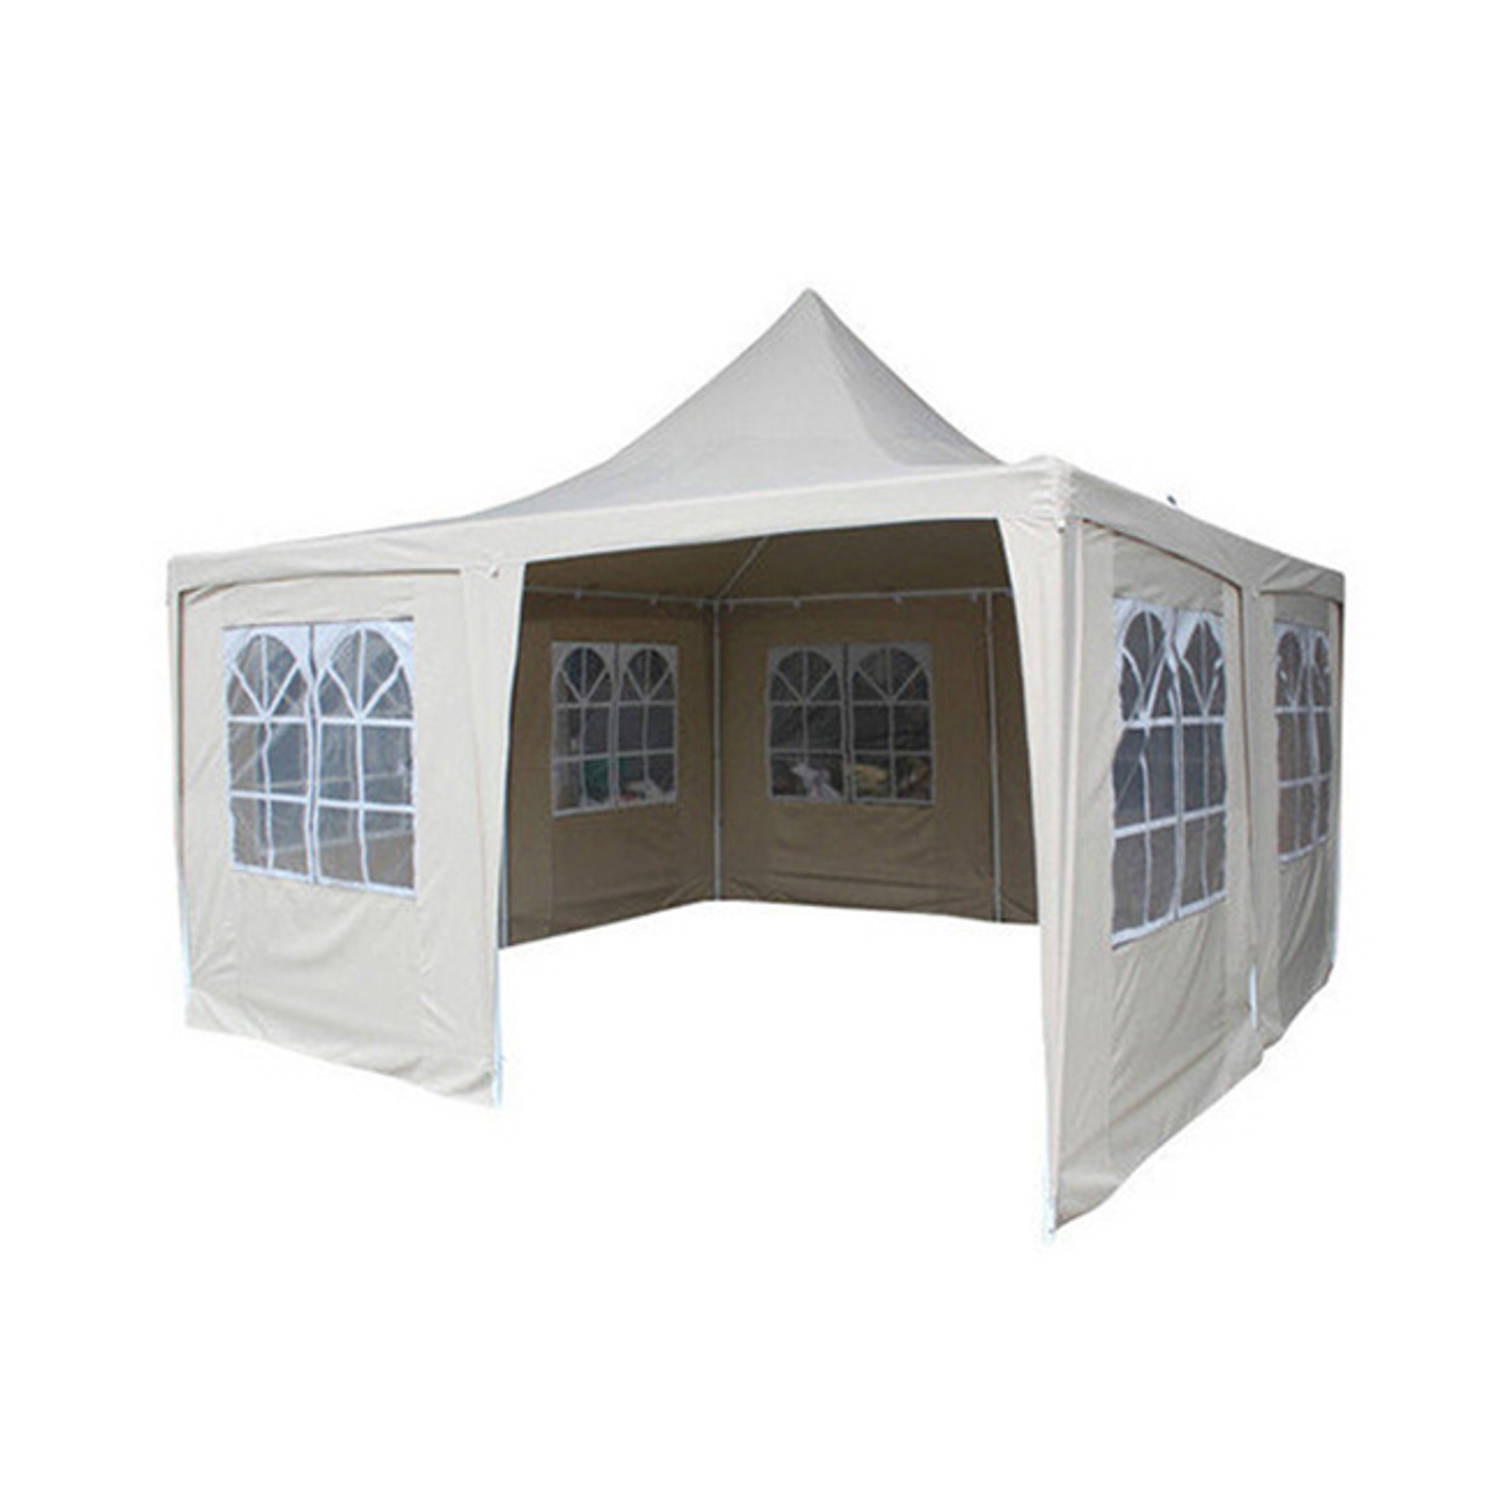 Partytent 4x4m Pagode